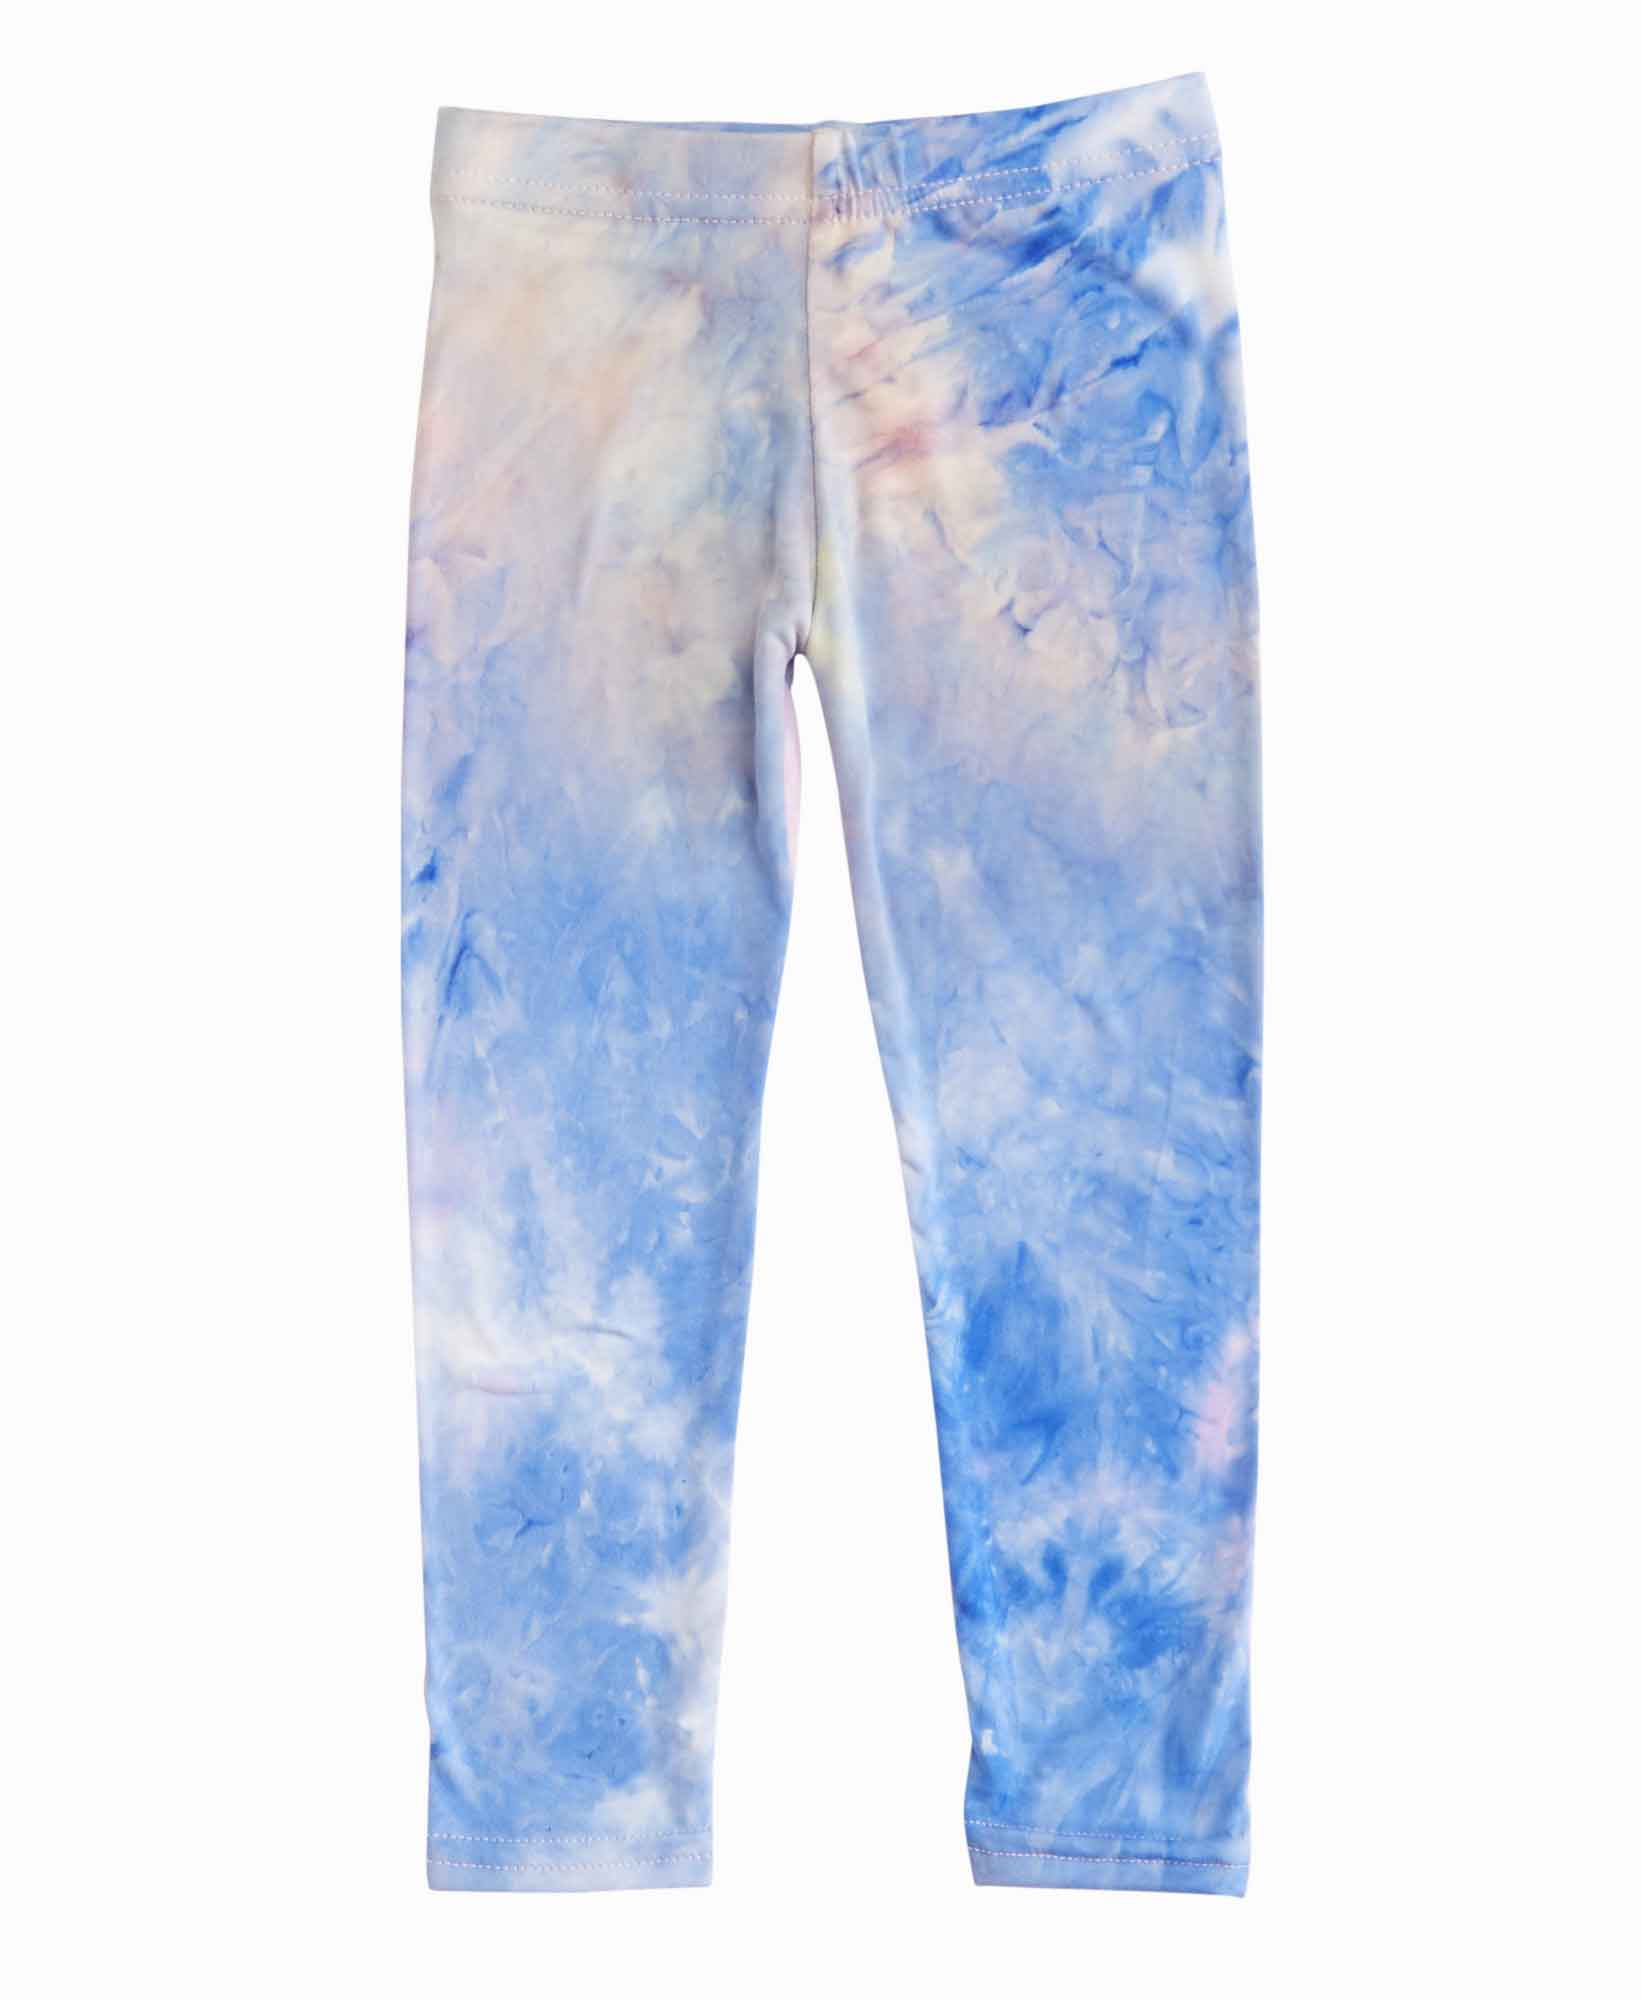 Dori Creations Tie Dye Leggings